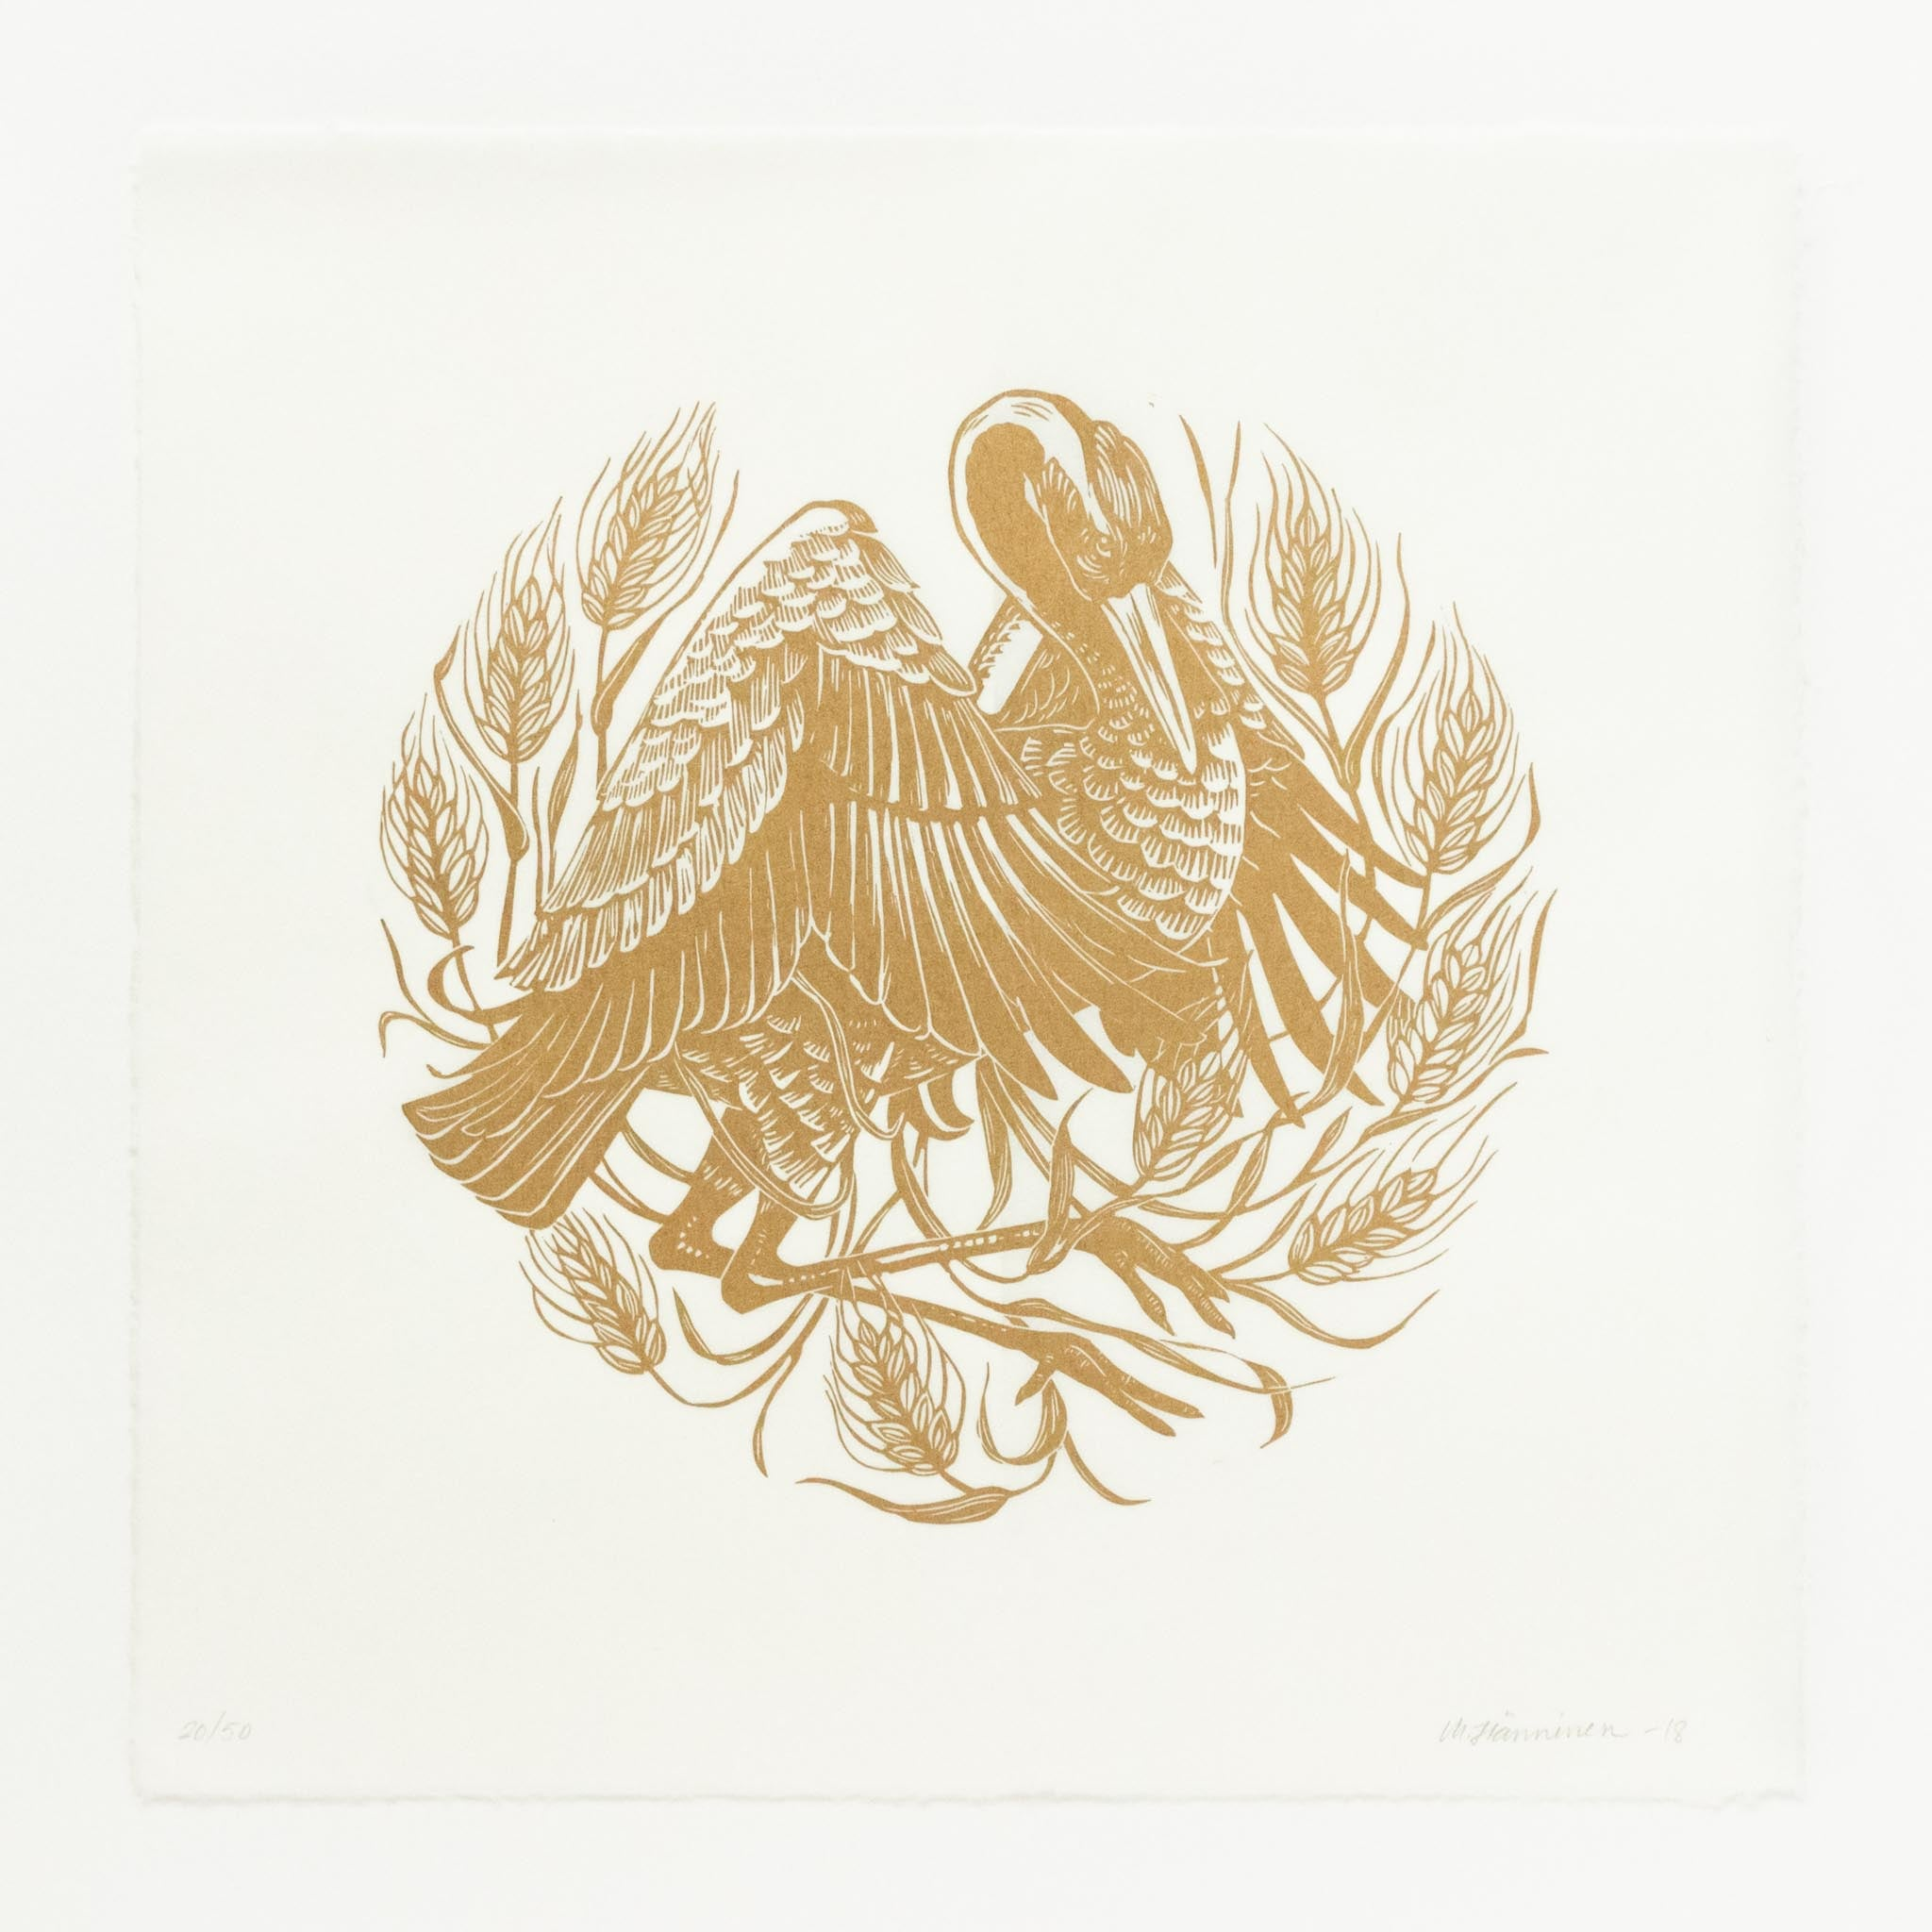 Round linocut design of a crane with wings open in a field of grain, printed with gold ink on square white Japanese paper.